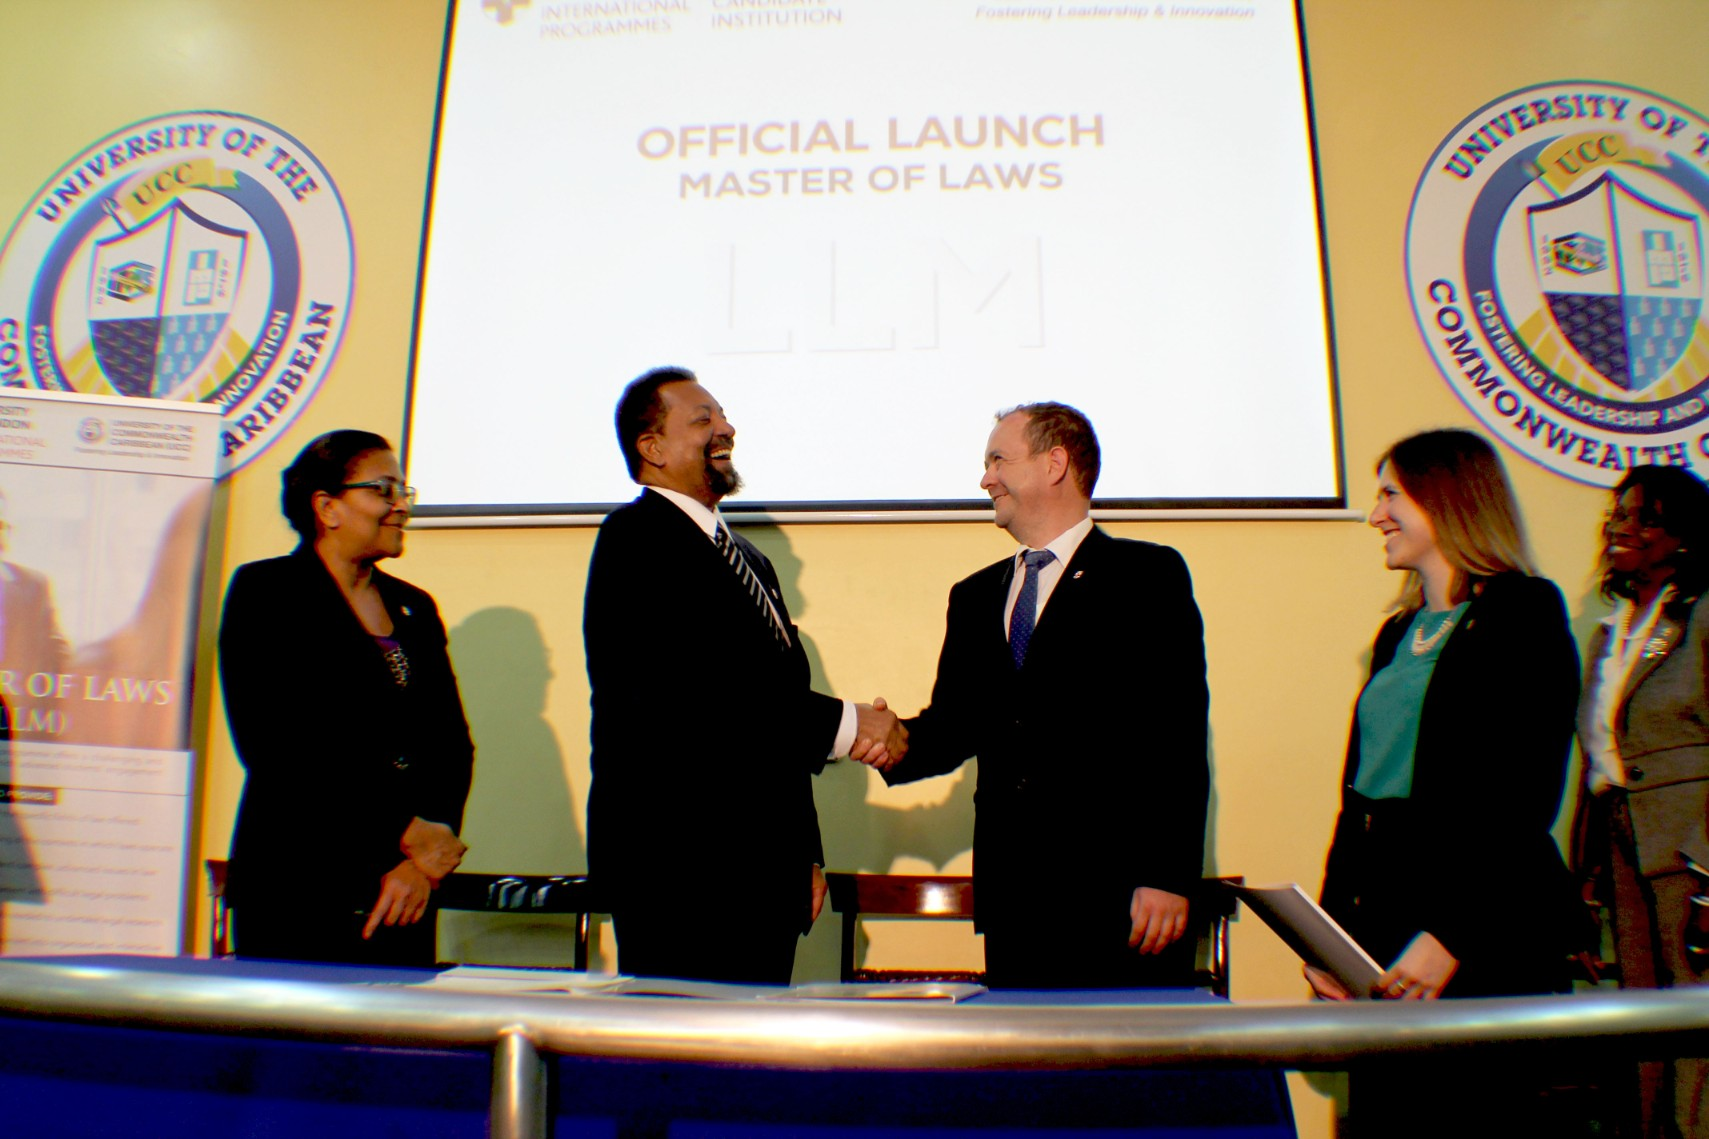 UCC to offer postgraduate law